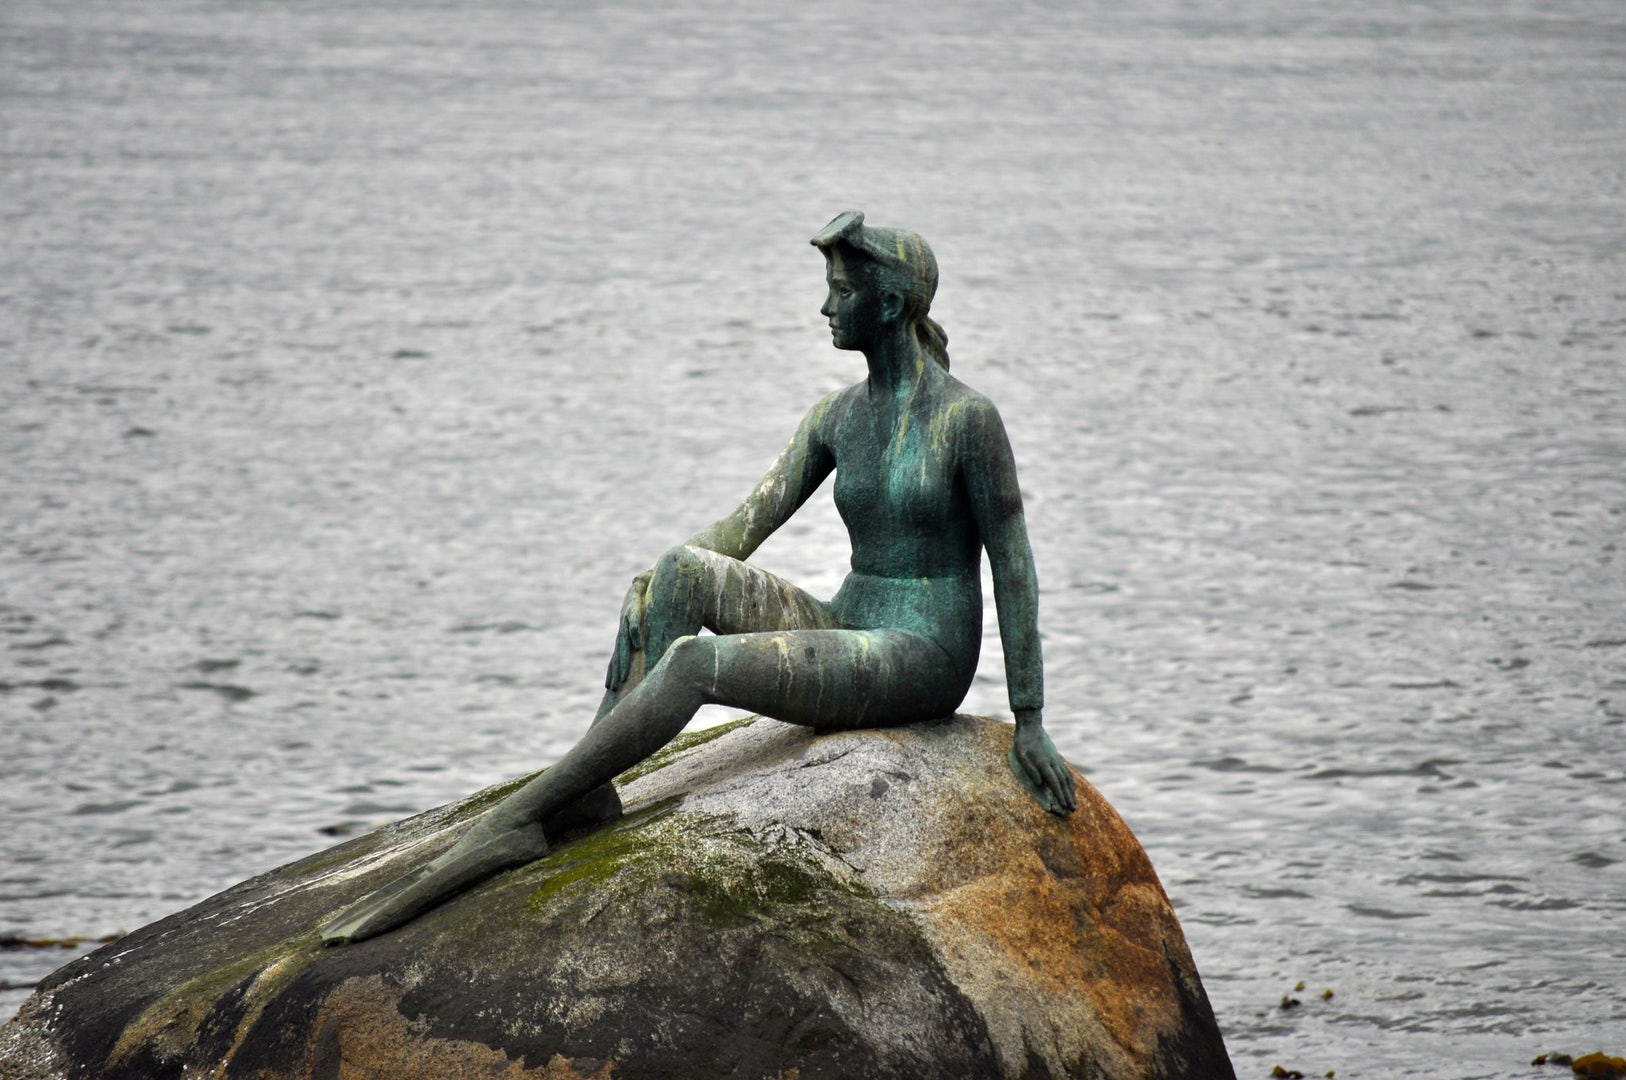 statue by the Vancouver seawall 'Girl in a Wetsuit'